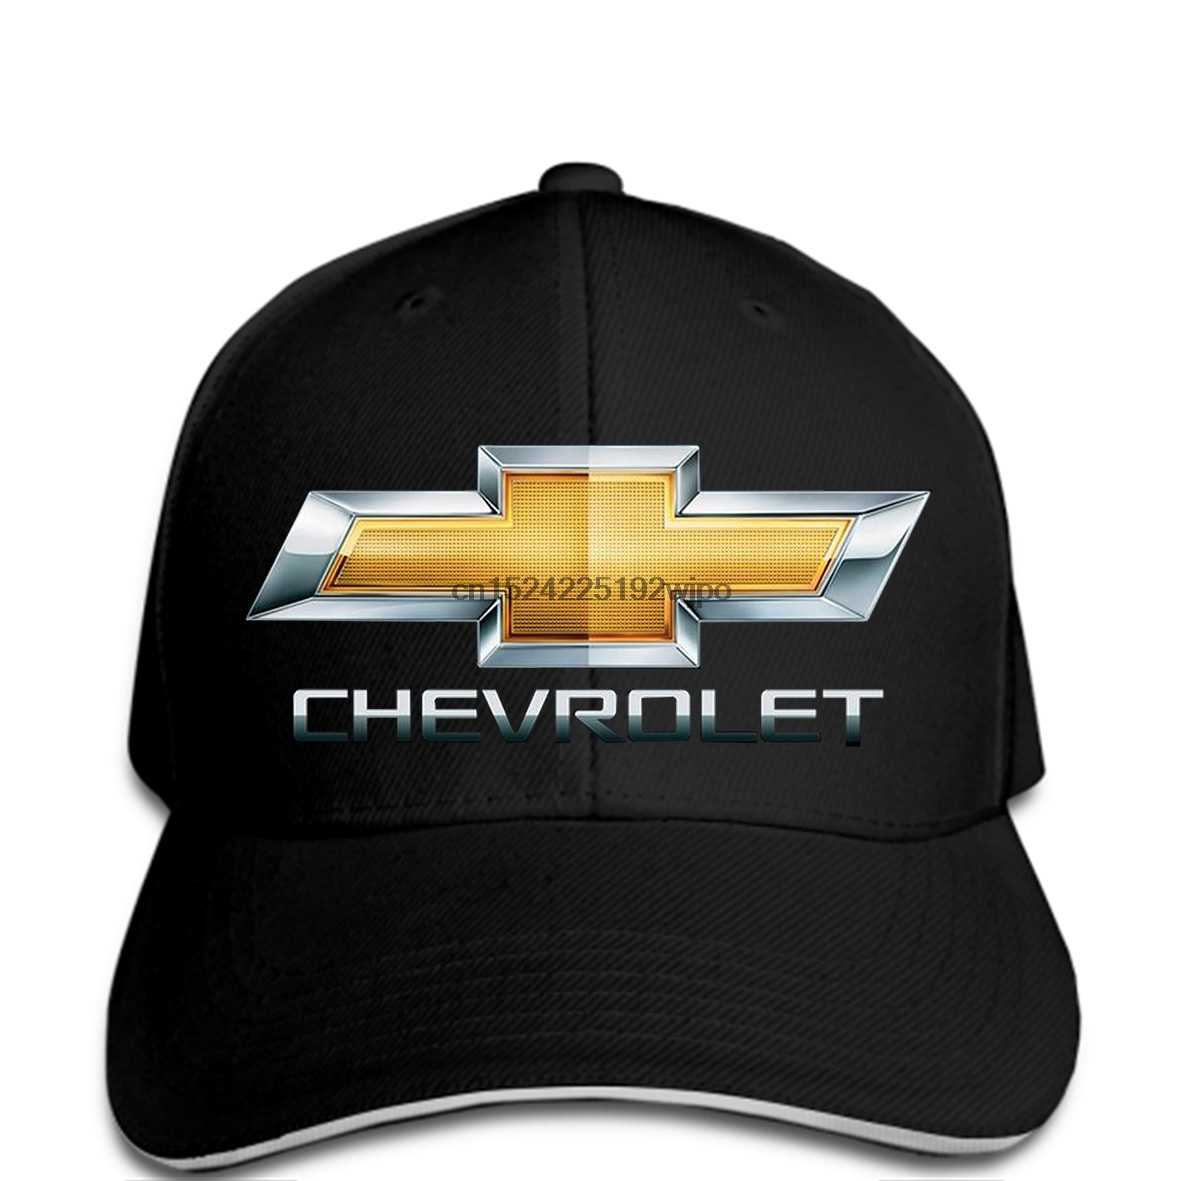 1b60bb64ace Detail Feedback Questions about Men Baseball cap Chevy Chevrolet  Photographic Chrome Logo on a Black Baseball cap funny cap novelty cap  women on ...